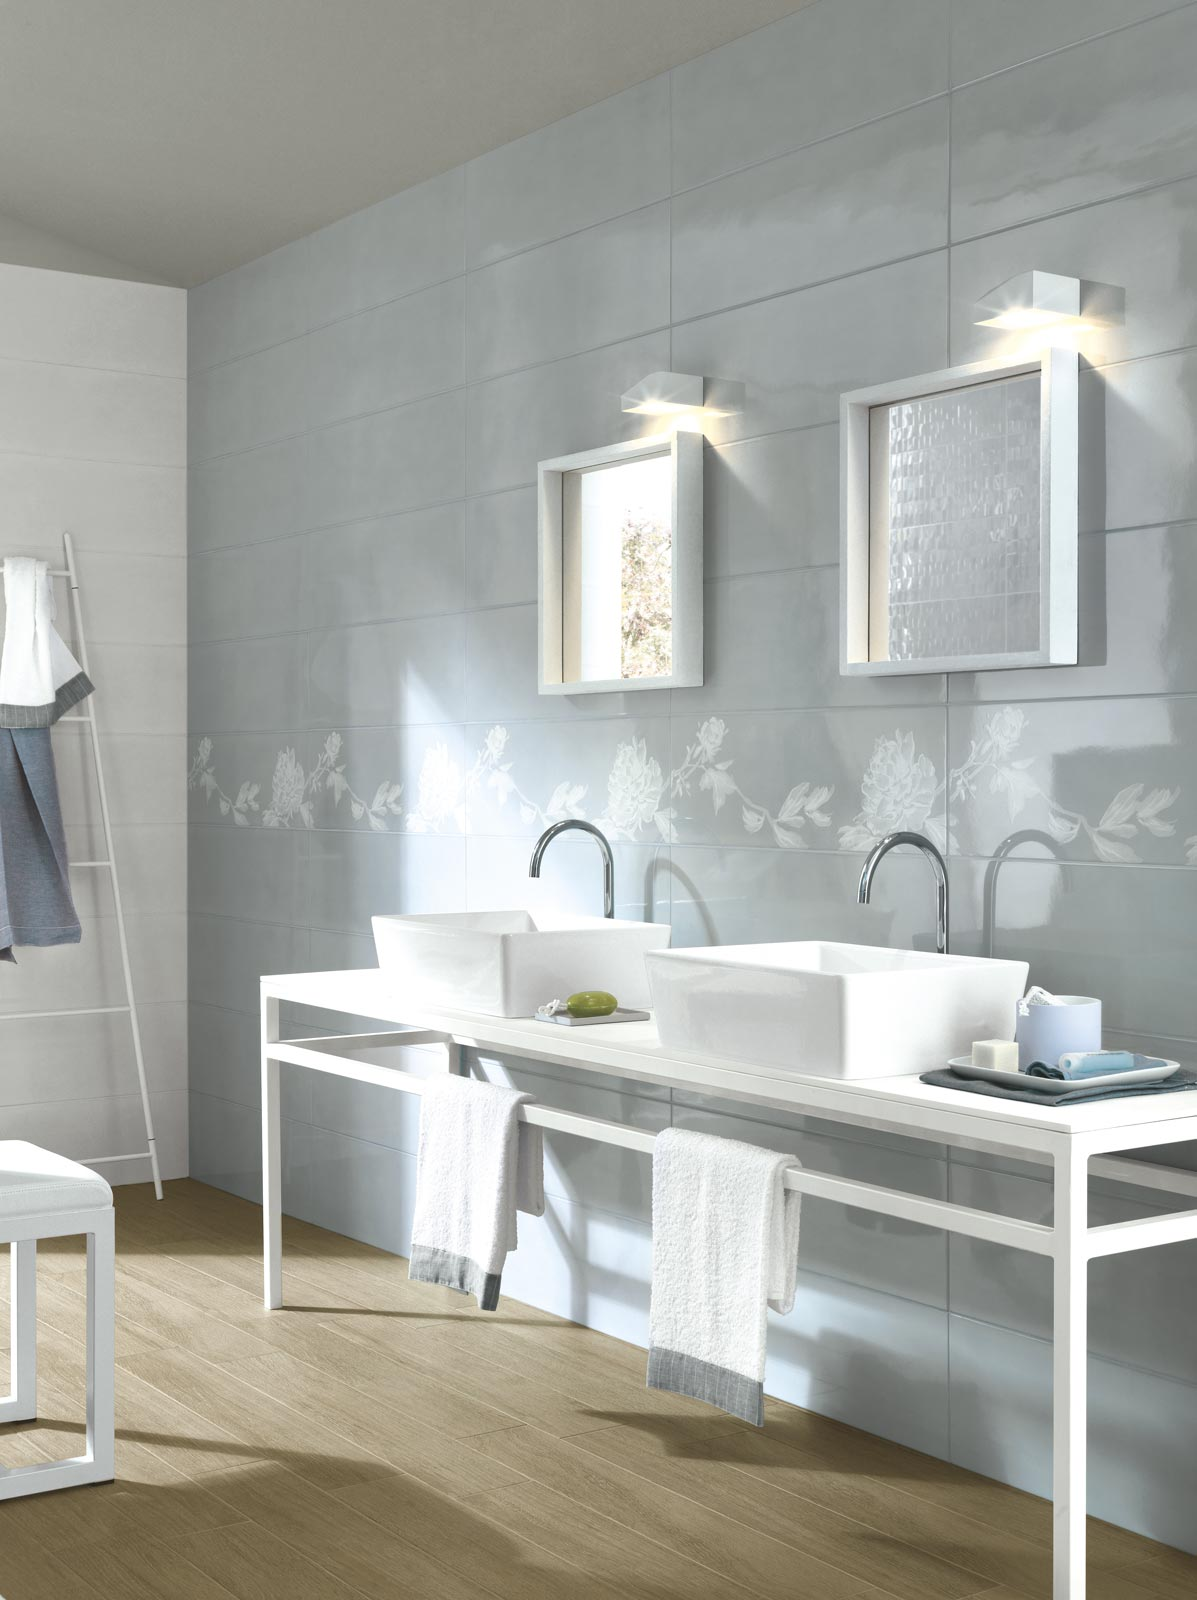 Handmade collection gloss effect bathroom walls ragno handmade ceramic tiles ragno4931 dailygadgetfo Gallery